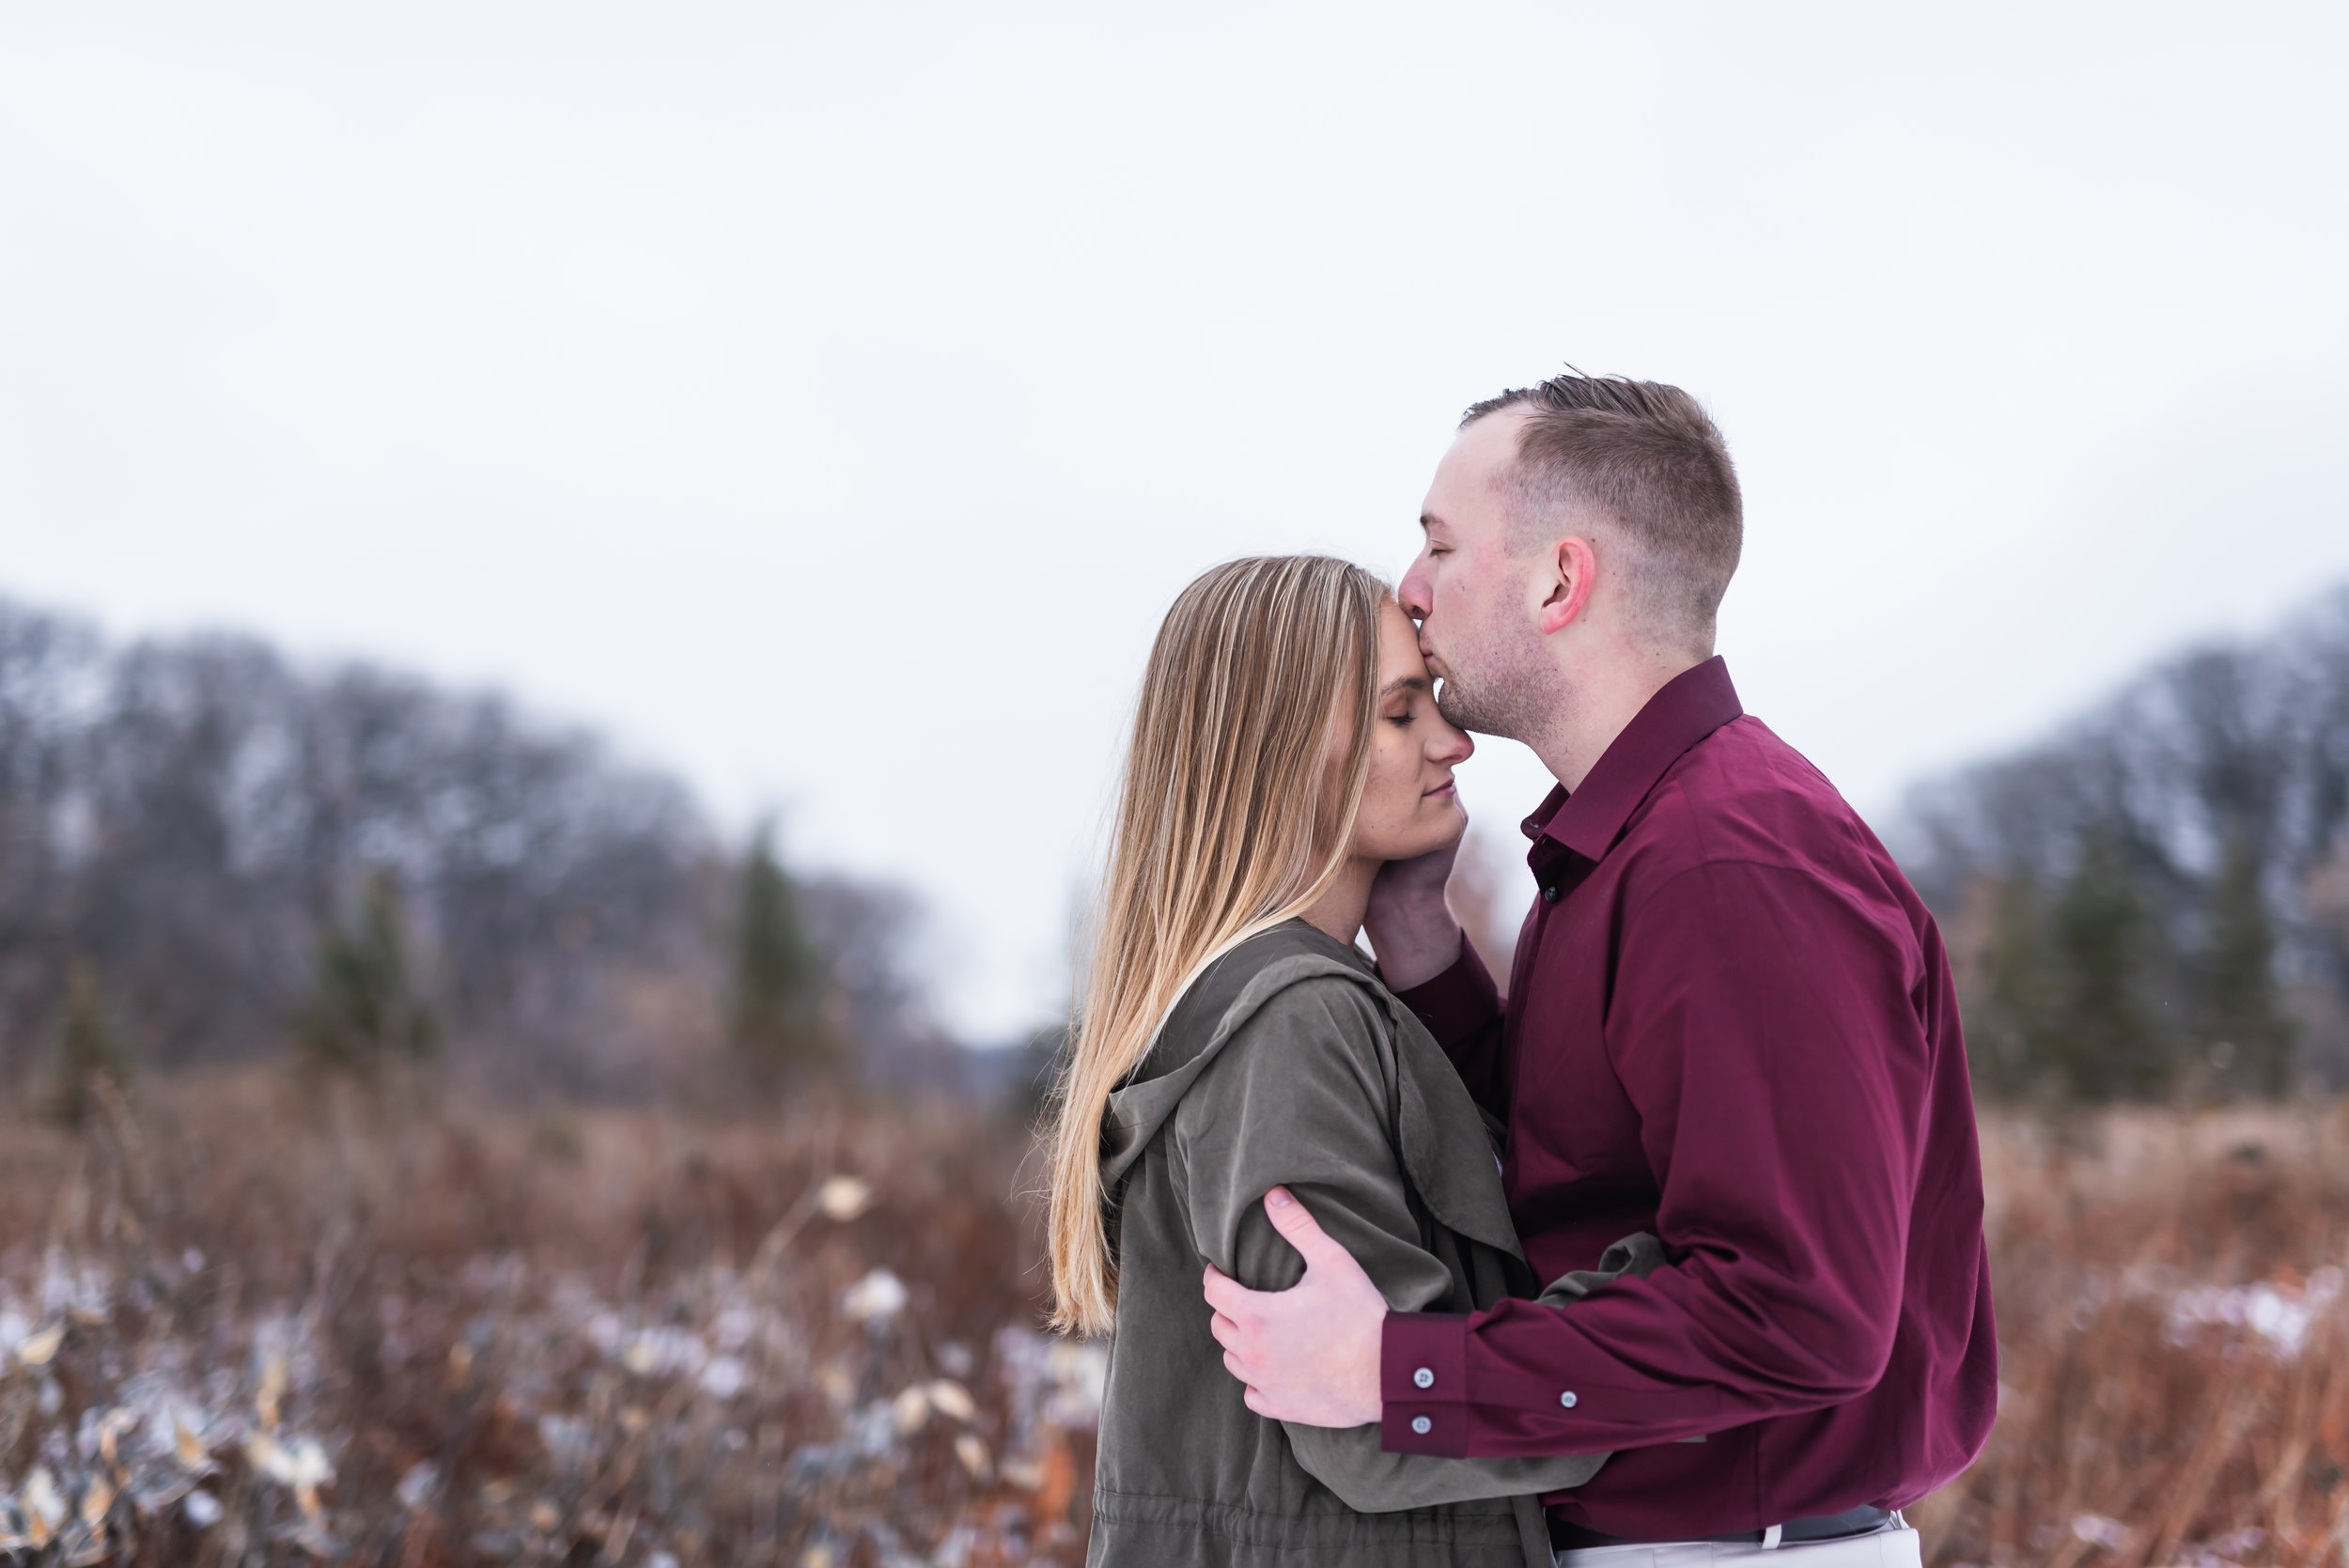 Fargo Winter Engagement Photos - Chelsea Joy Photography - Fargo Wedding Photographer